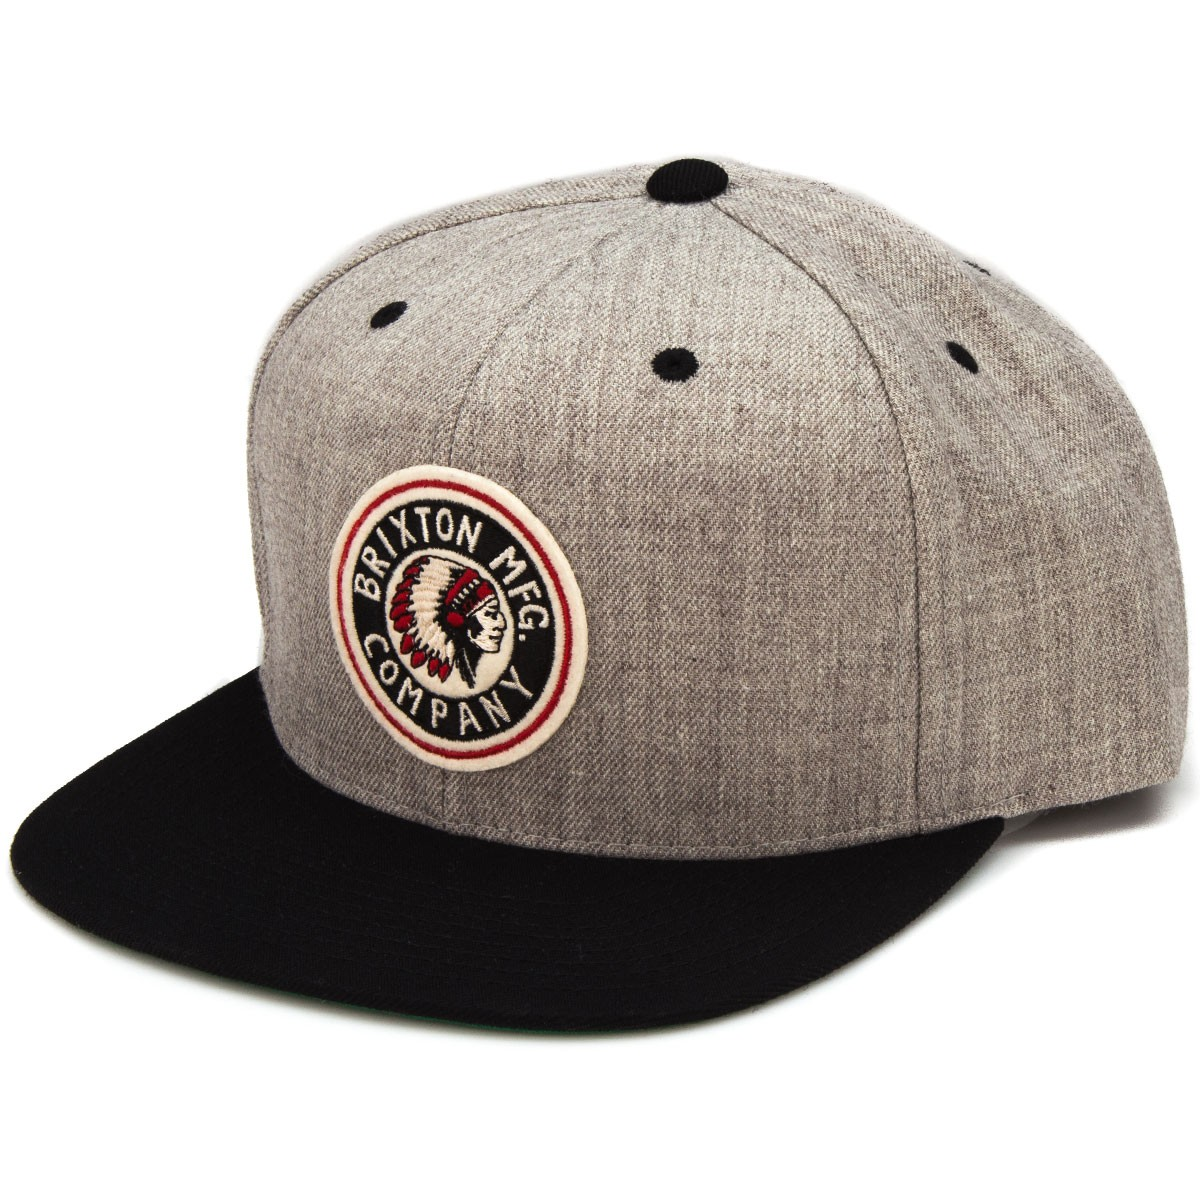 44bcaf541d4 ... reduced brixton rival snap back hat light heather grey black 1e740 817e1